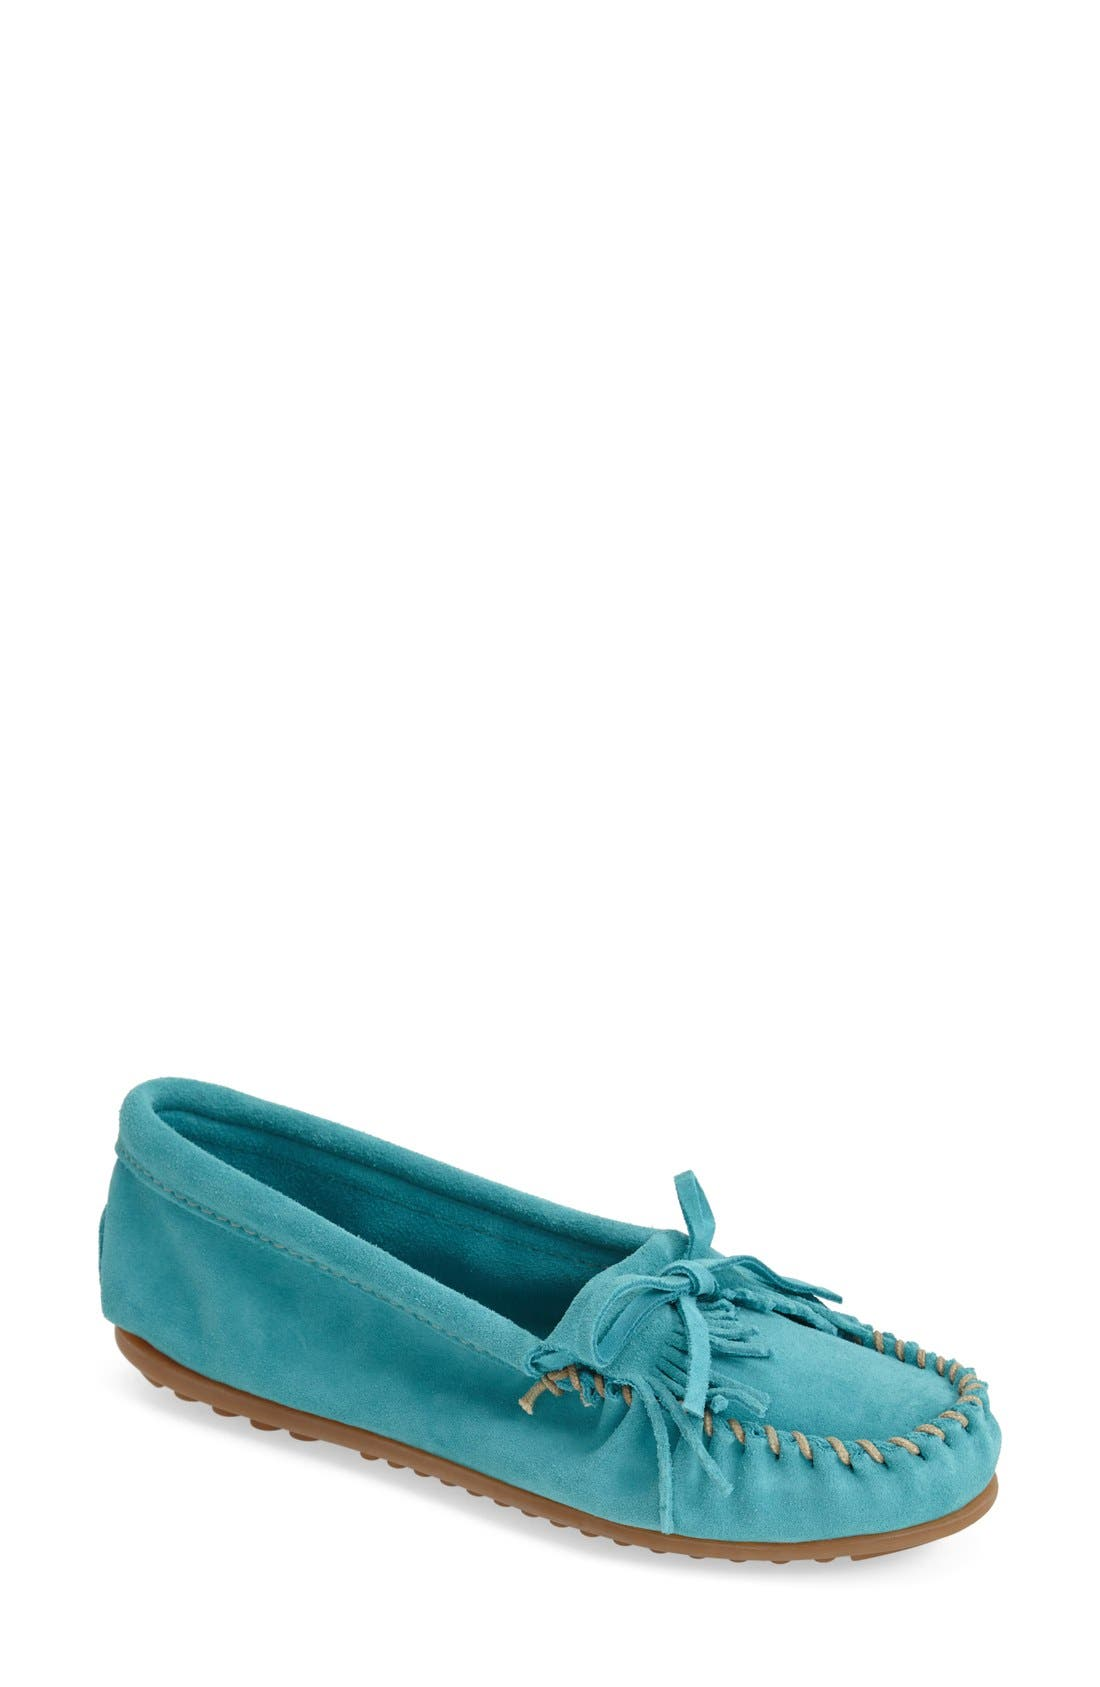 MINNETONKA 'Kilty' Suede Moccasin, Main, color, TURQUOISE